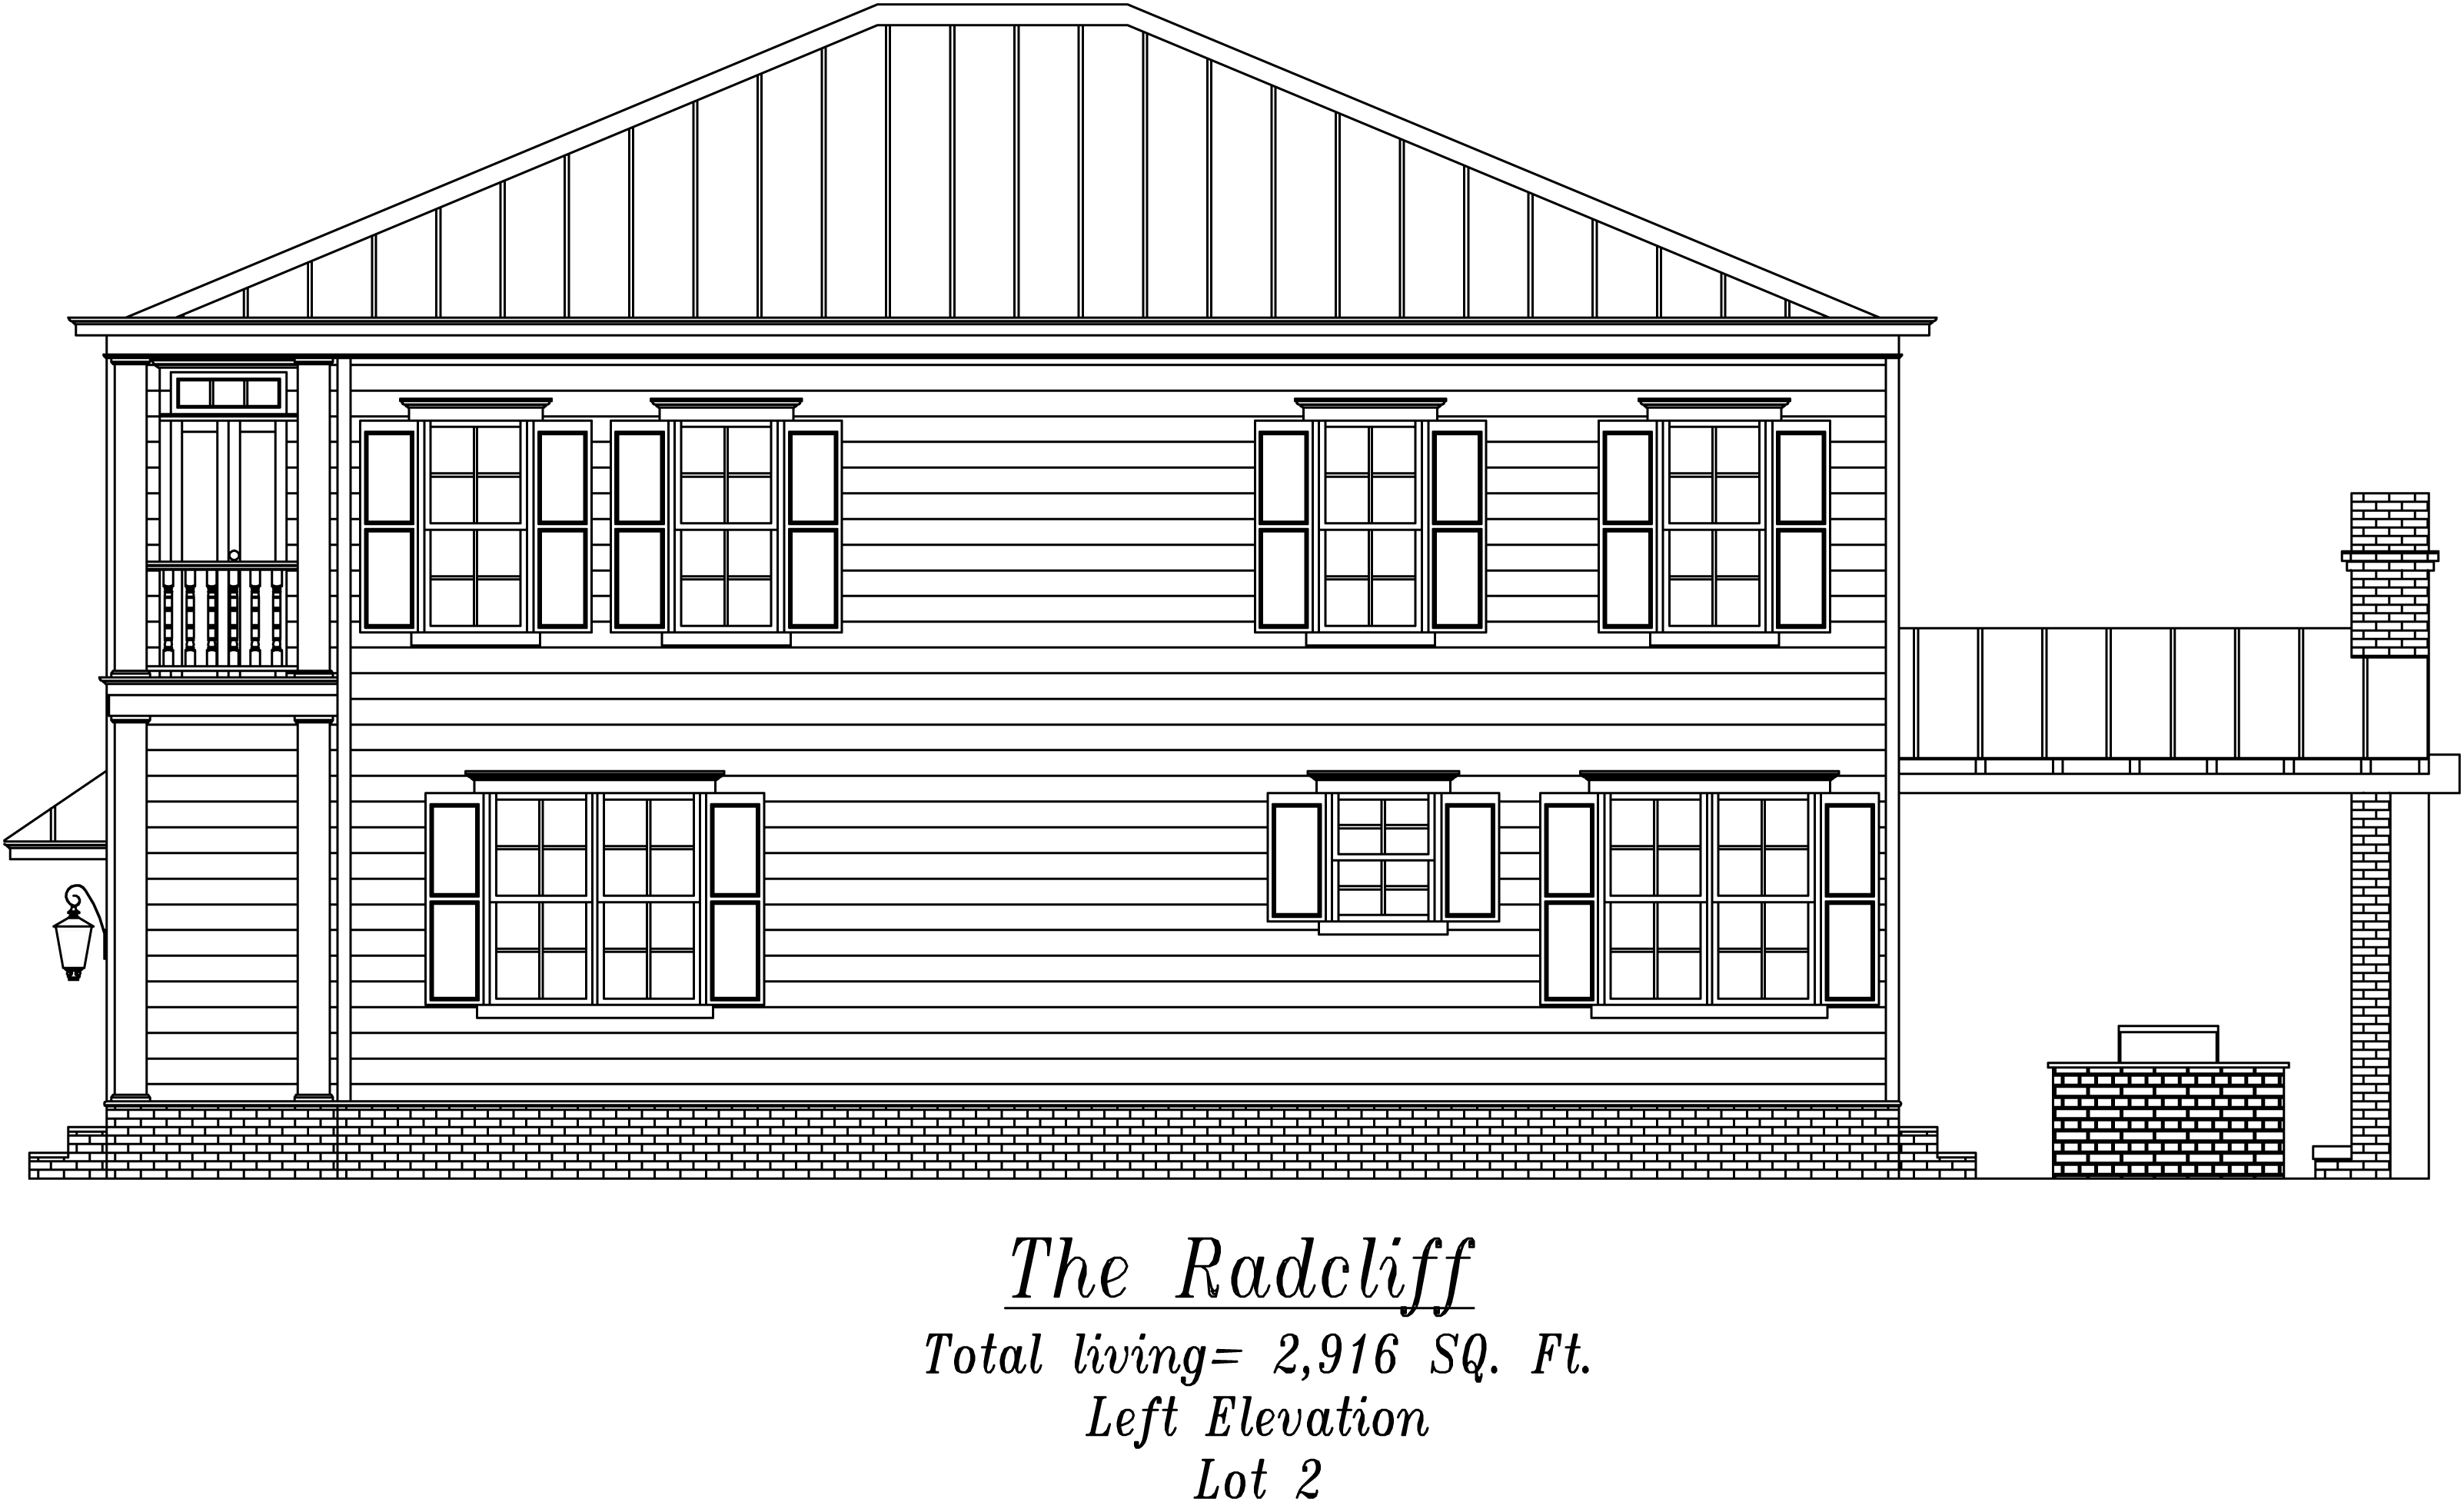 Radcliff Left Elevation